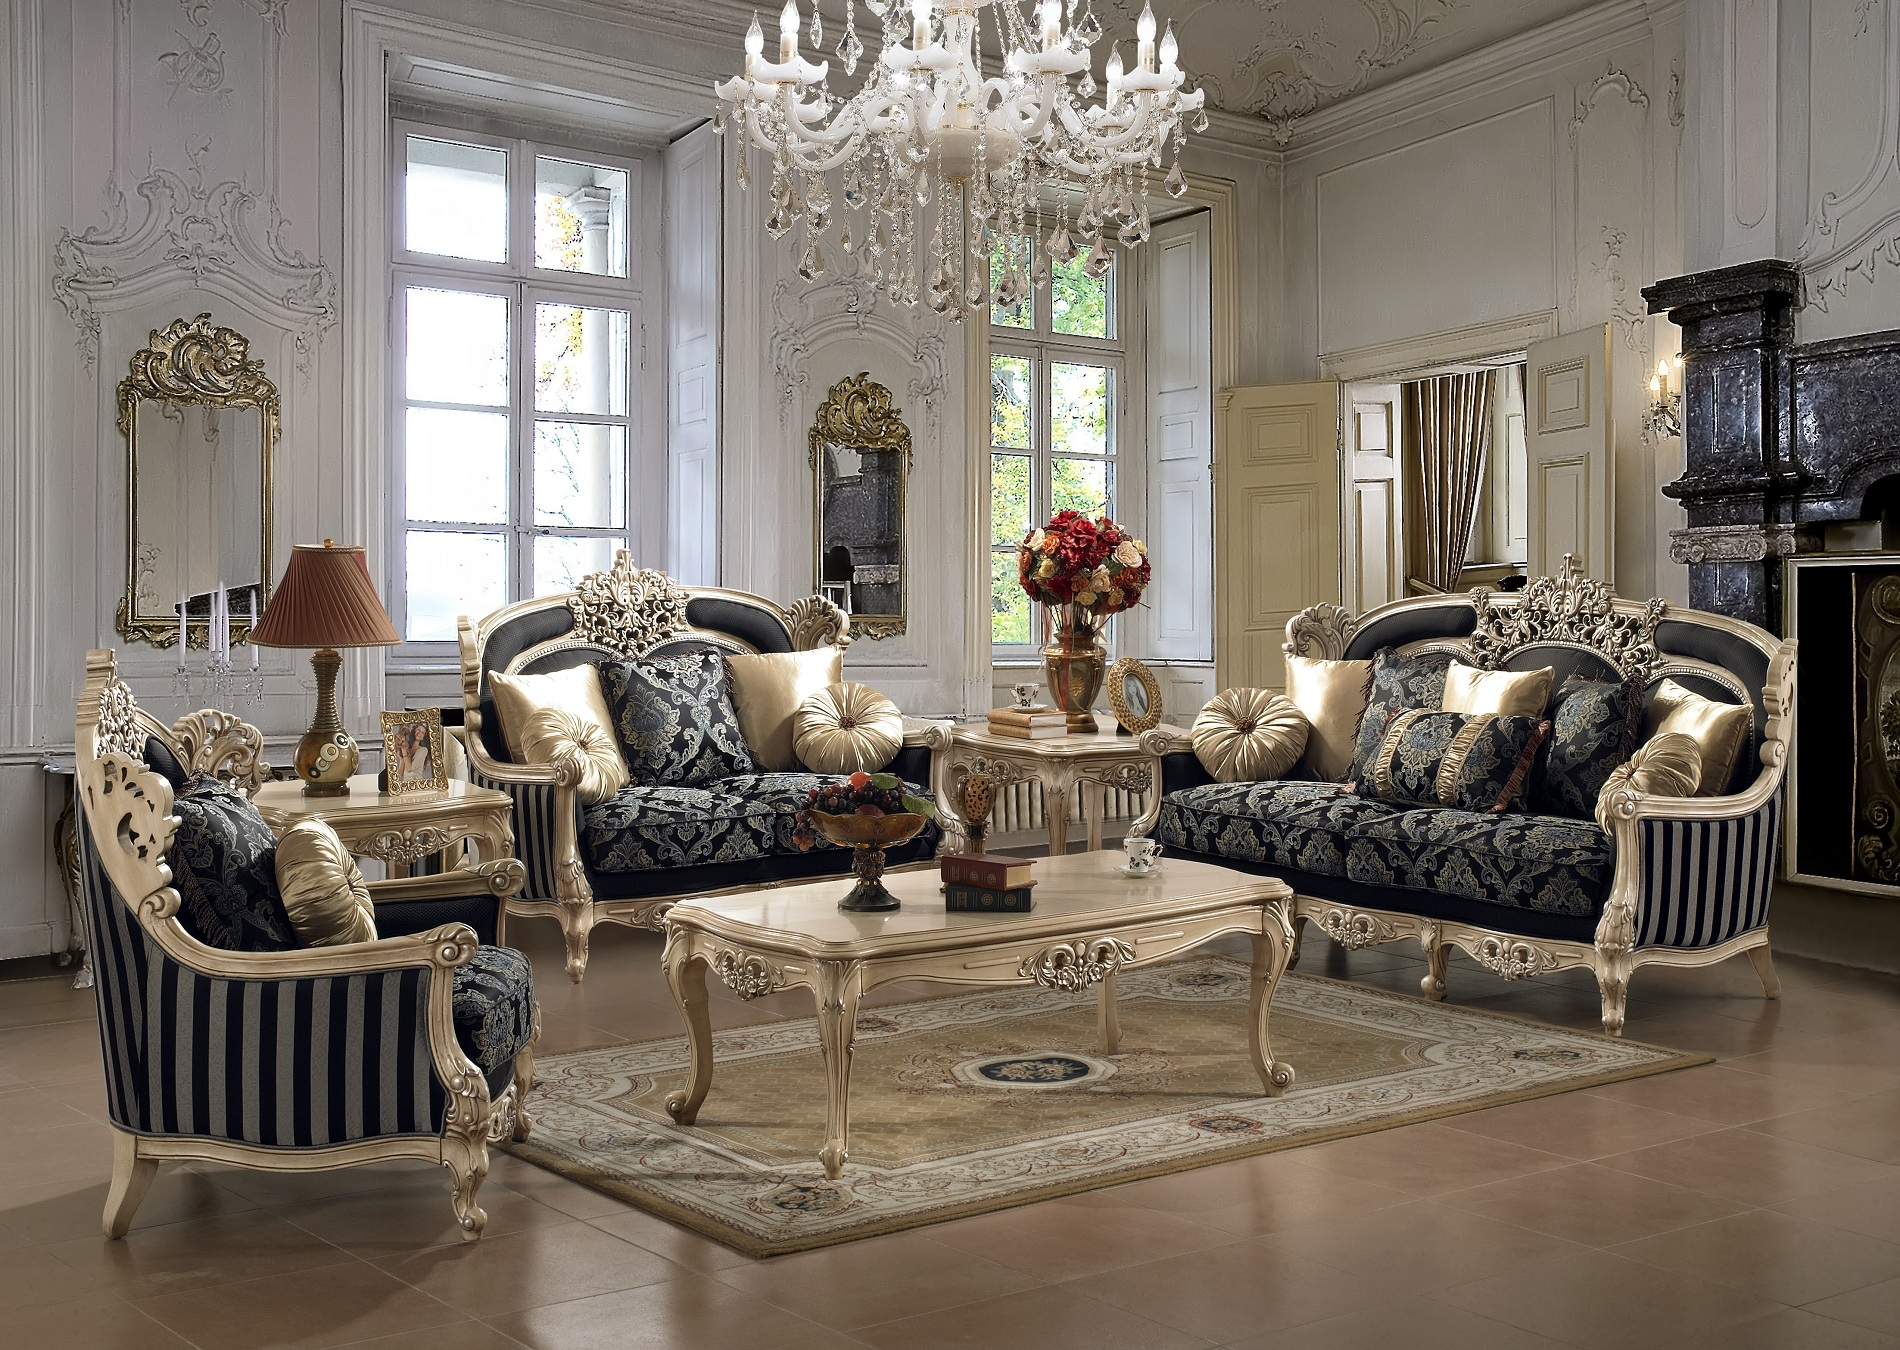 Luxury Elegant Sofa Set 25 For Your Office Sofa Ideas With Elegant Regarding Elegant Sofas And Chairs (Image 8 of 15)